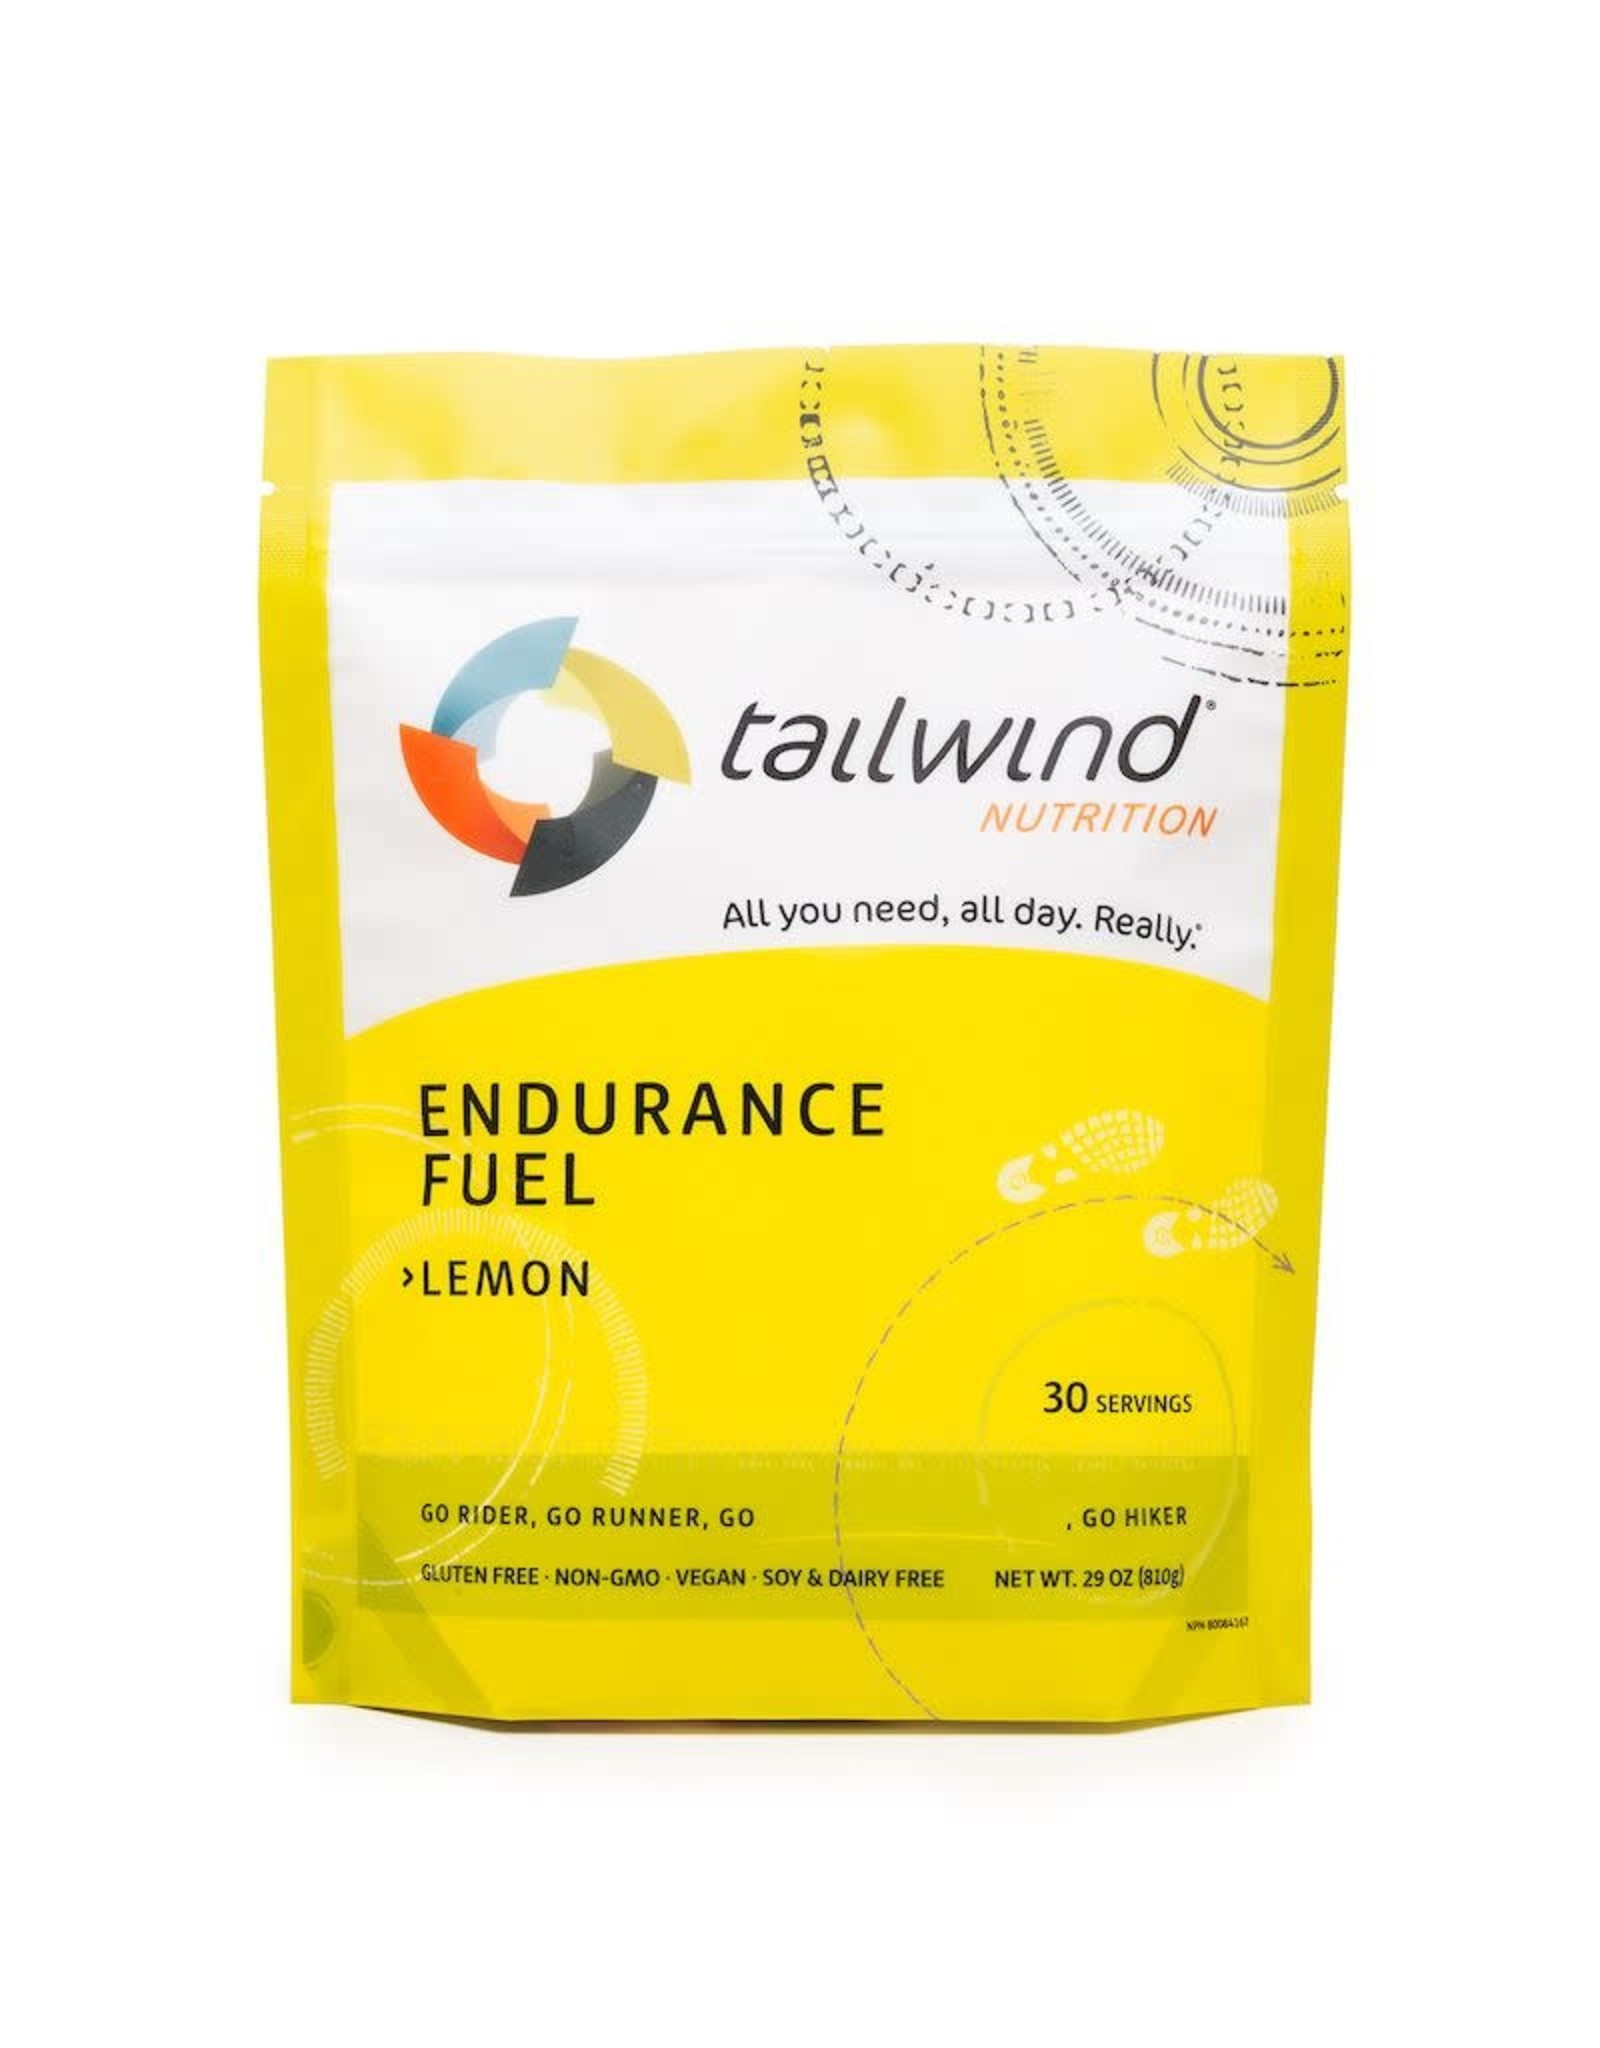 Tailwind Nutrition Endurance Fuel Tailwind Lemon (30 servings)